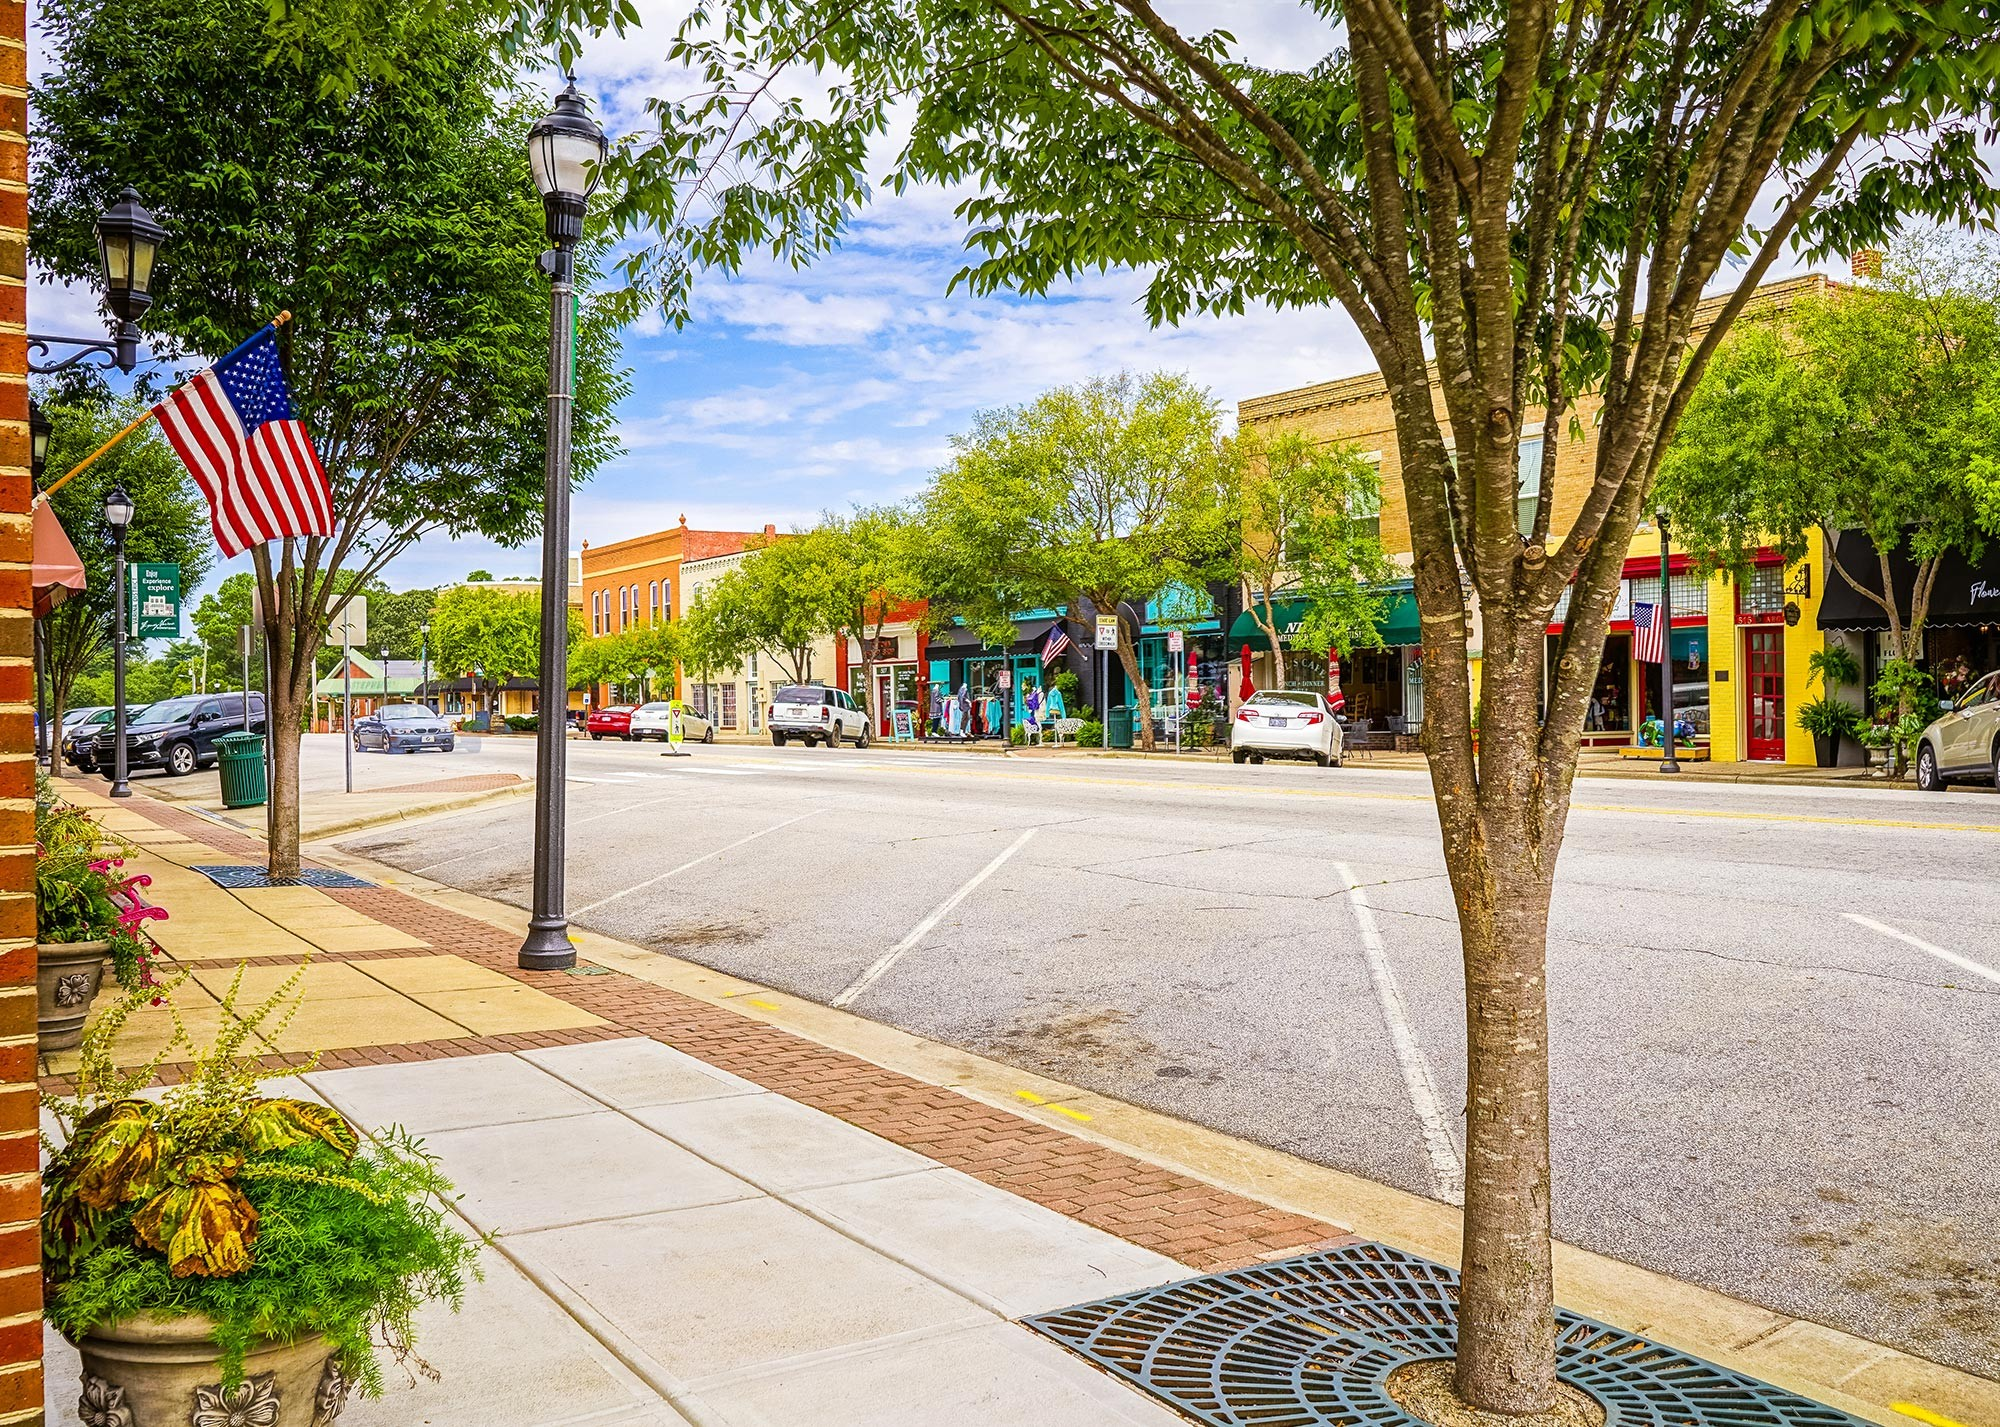 Downtown shops and restaurants in Fuquay-Varina, NC - Bent Tree